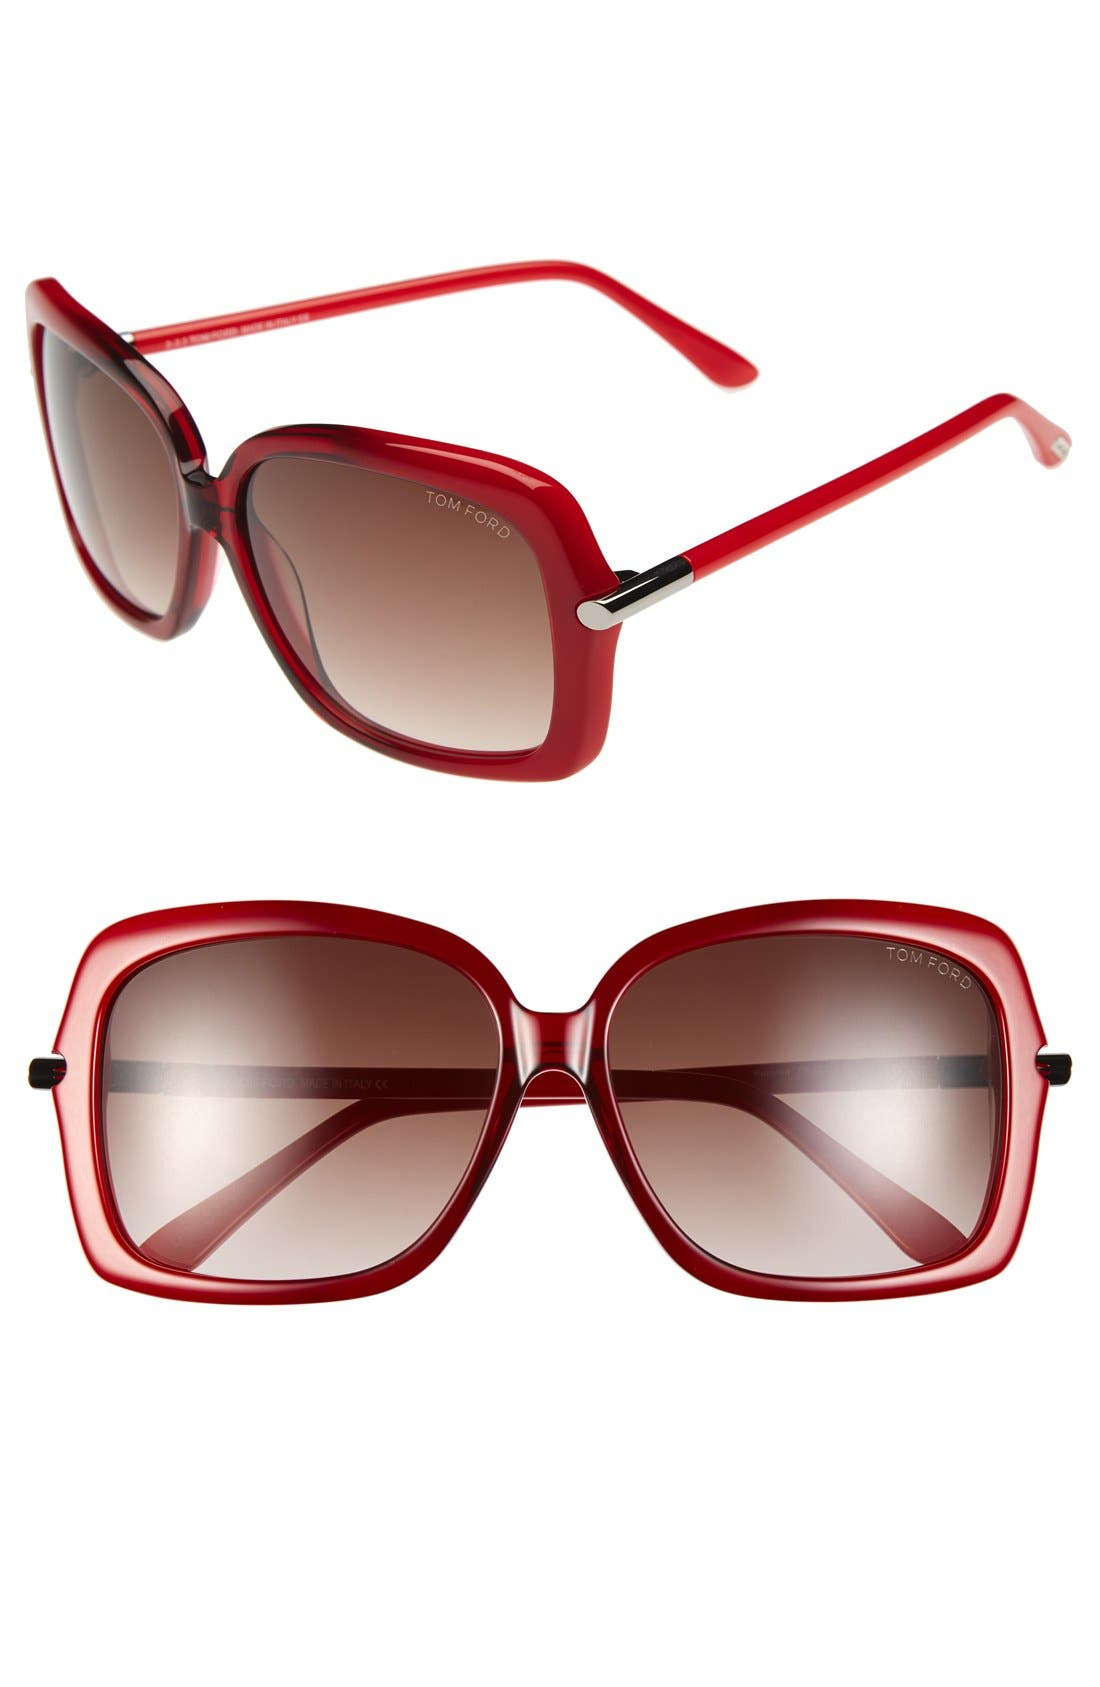 Main Image - Tom Ford 'Paloma' 59mm Sunglasses